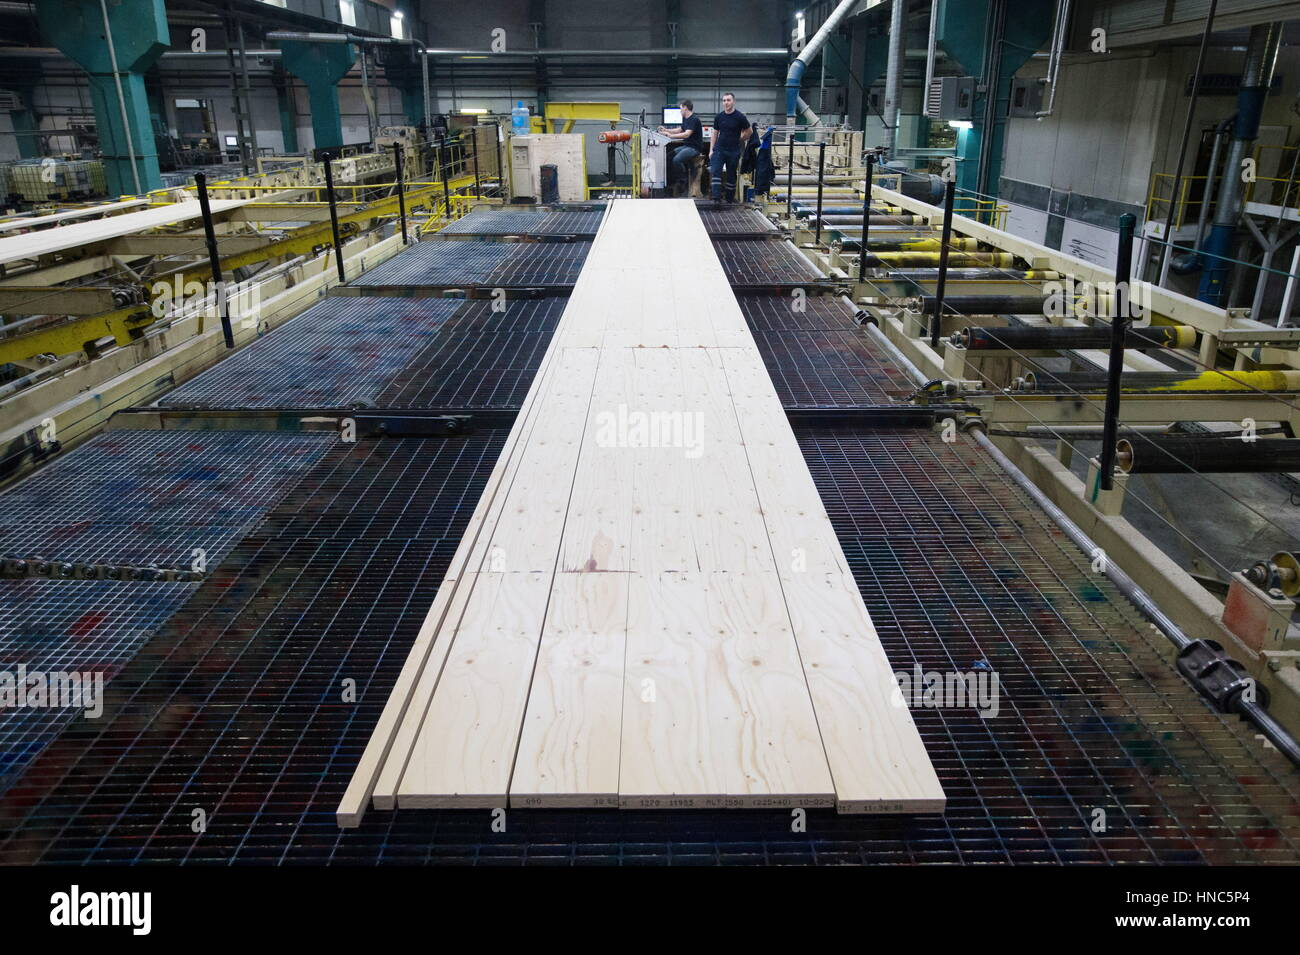 Torzhok, Tver Region, Russia. 10th Feb, 2017. Processing wood at the Talion Arbor high-technology timber plant launched - Stock Image